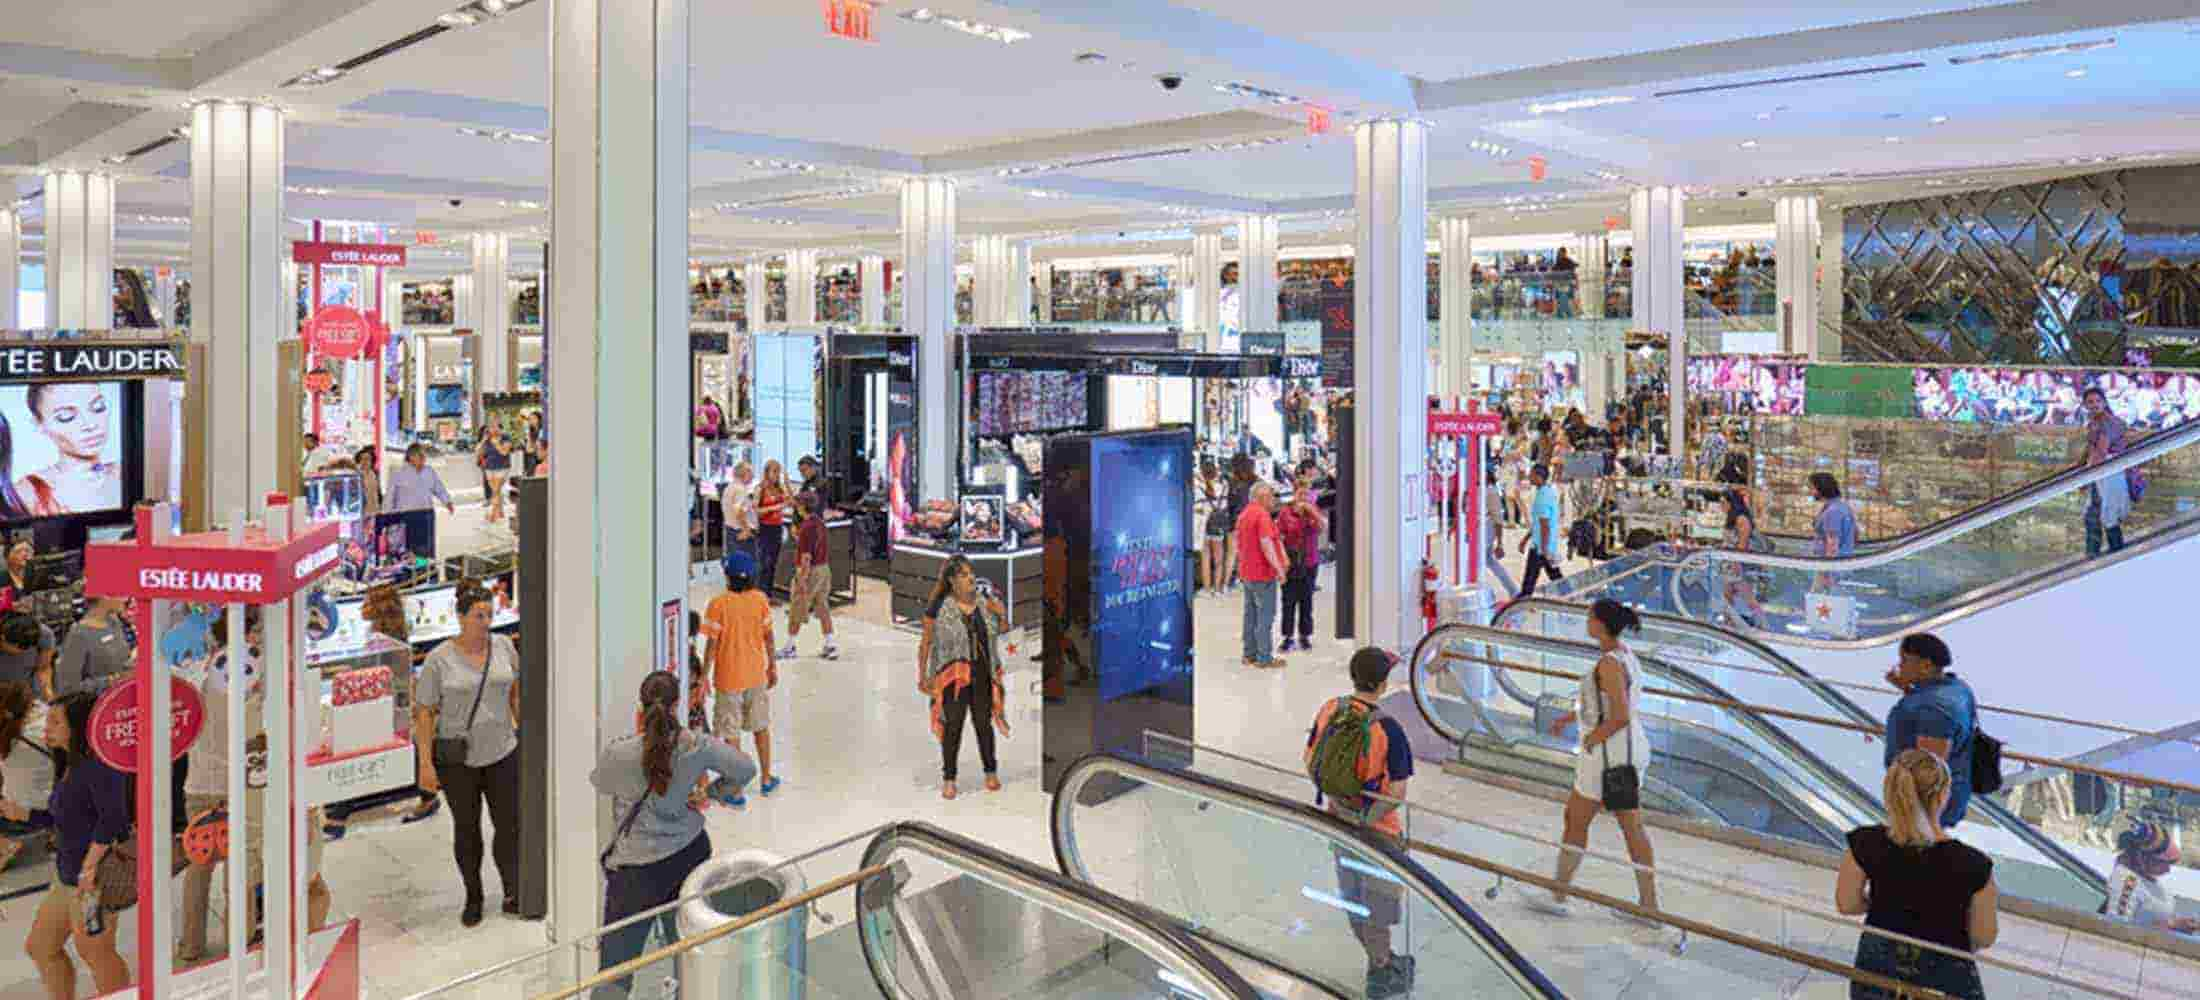 reinventing the department store